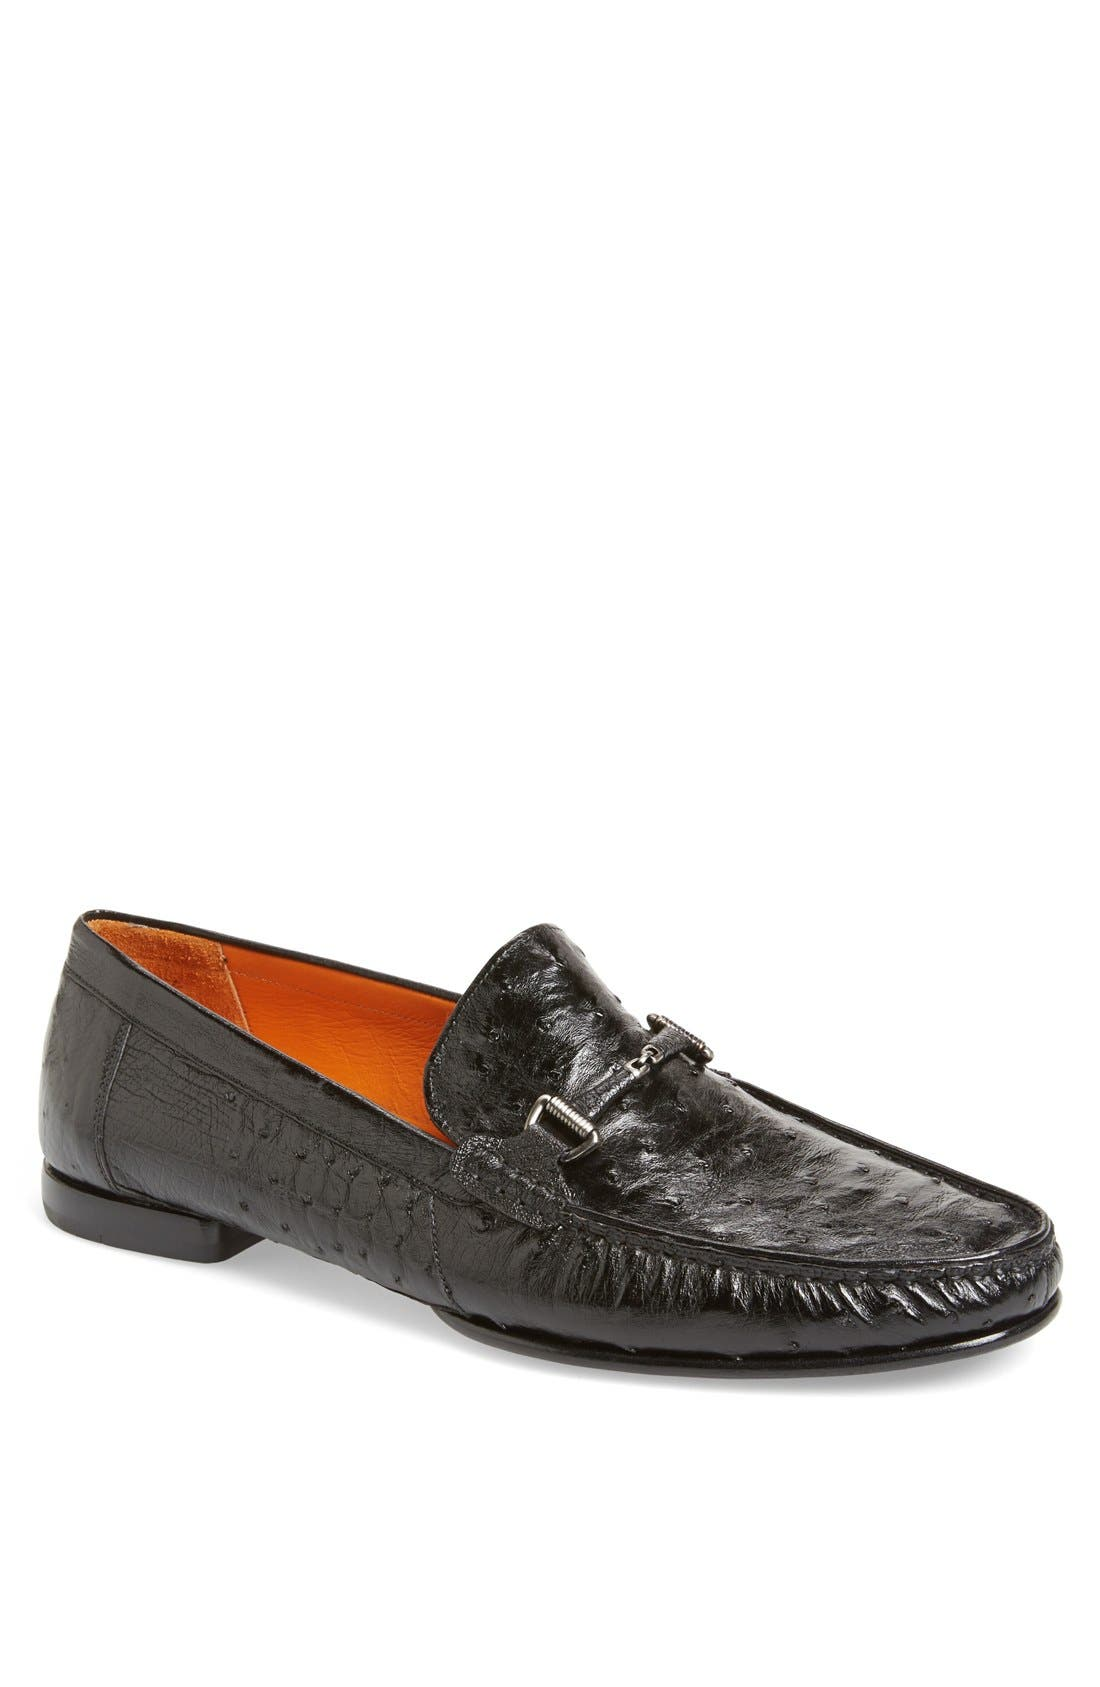 'Vittorio' Ostrich Leather Bit Loafer,                         Main,                         color, BLACK